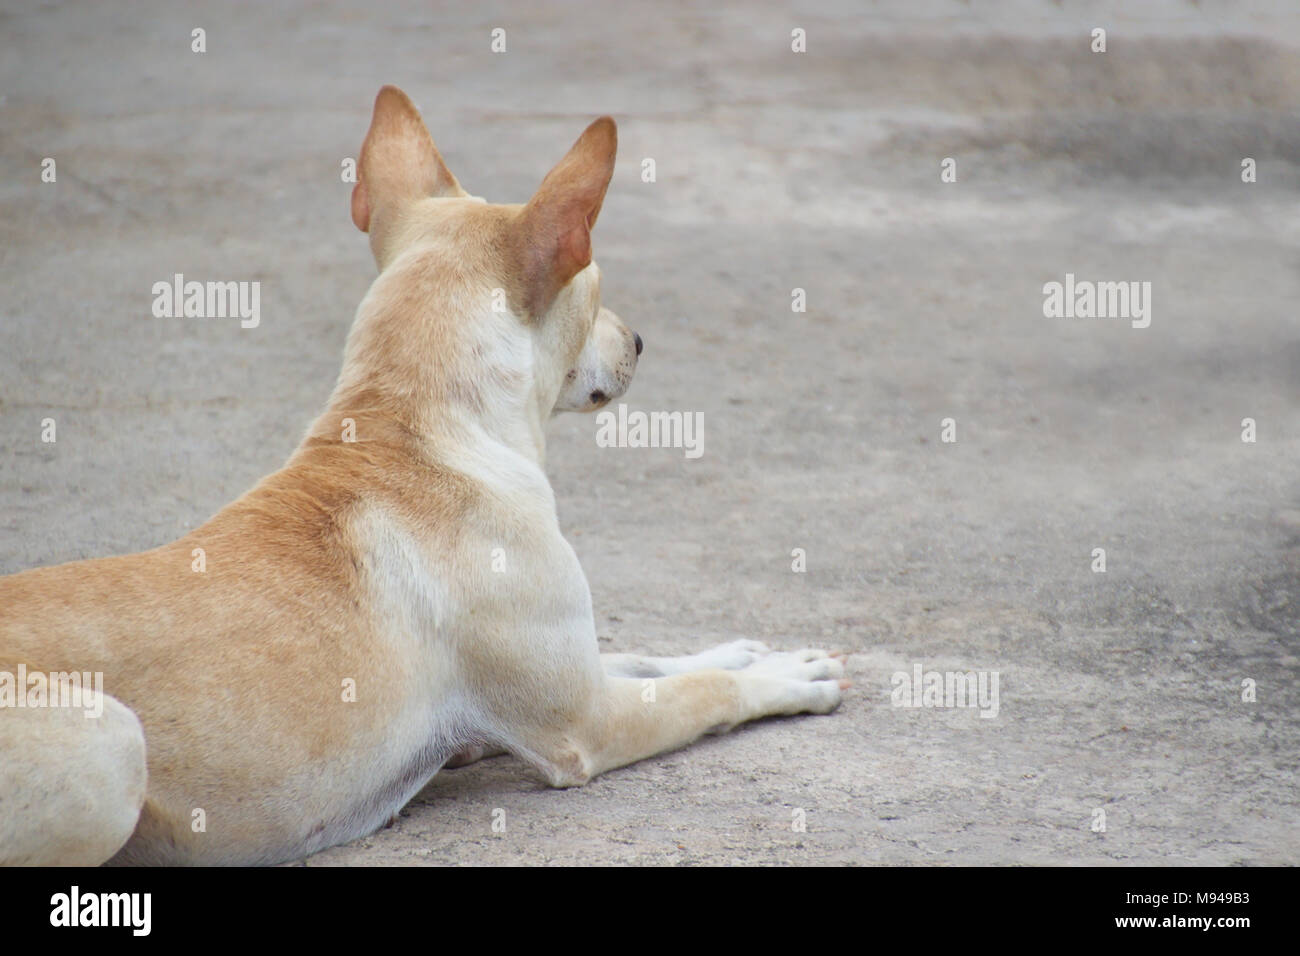 Closed up lonely dog waiting crouched on ground - Stock Image